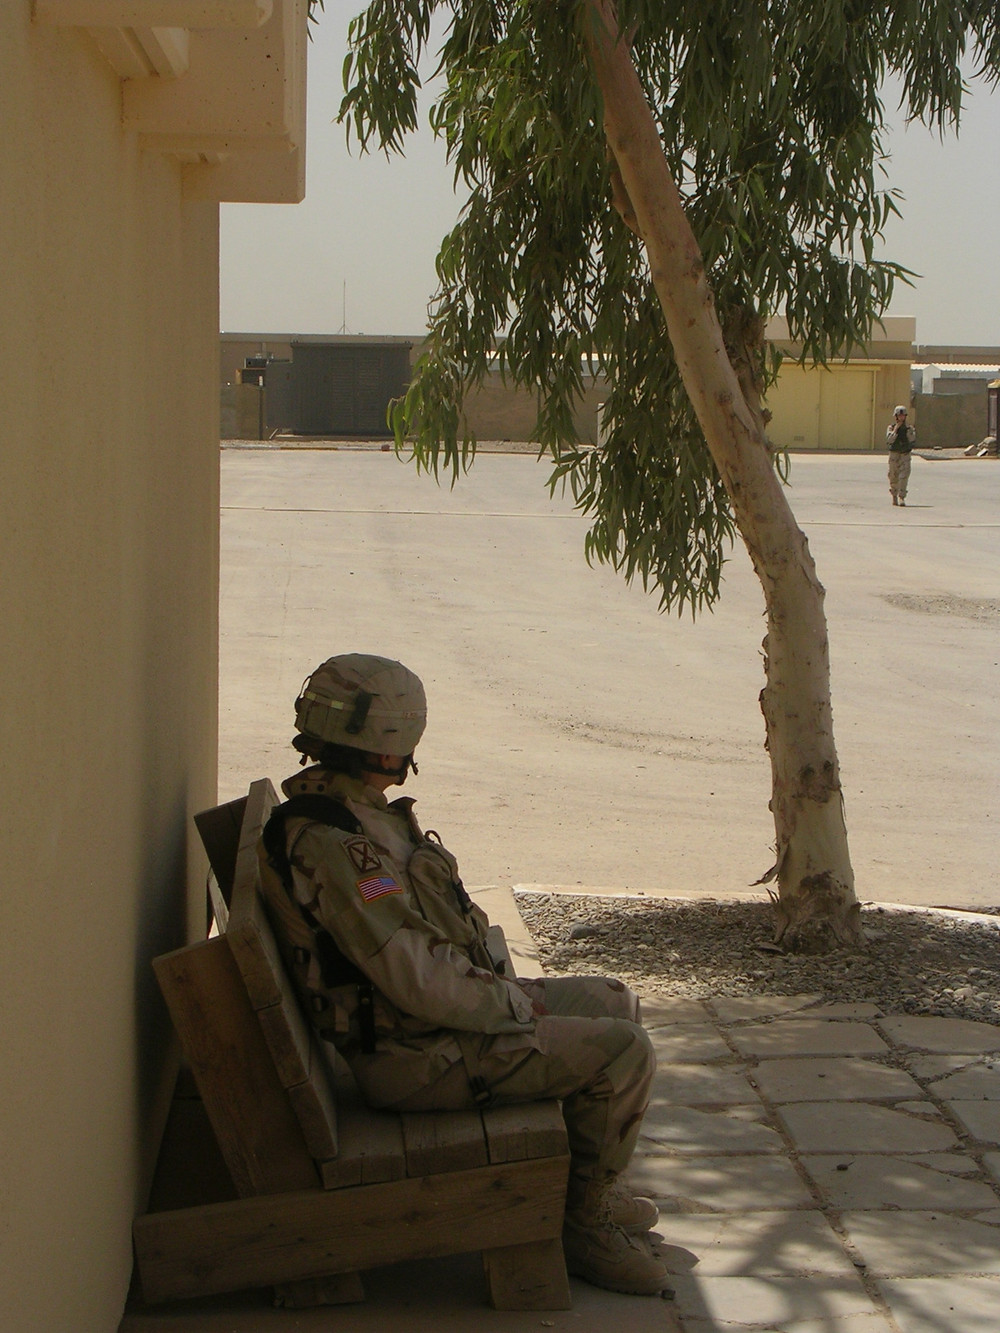 That's me, starting another long day in Iraq - Elana Duffy